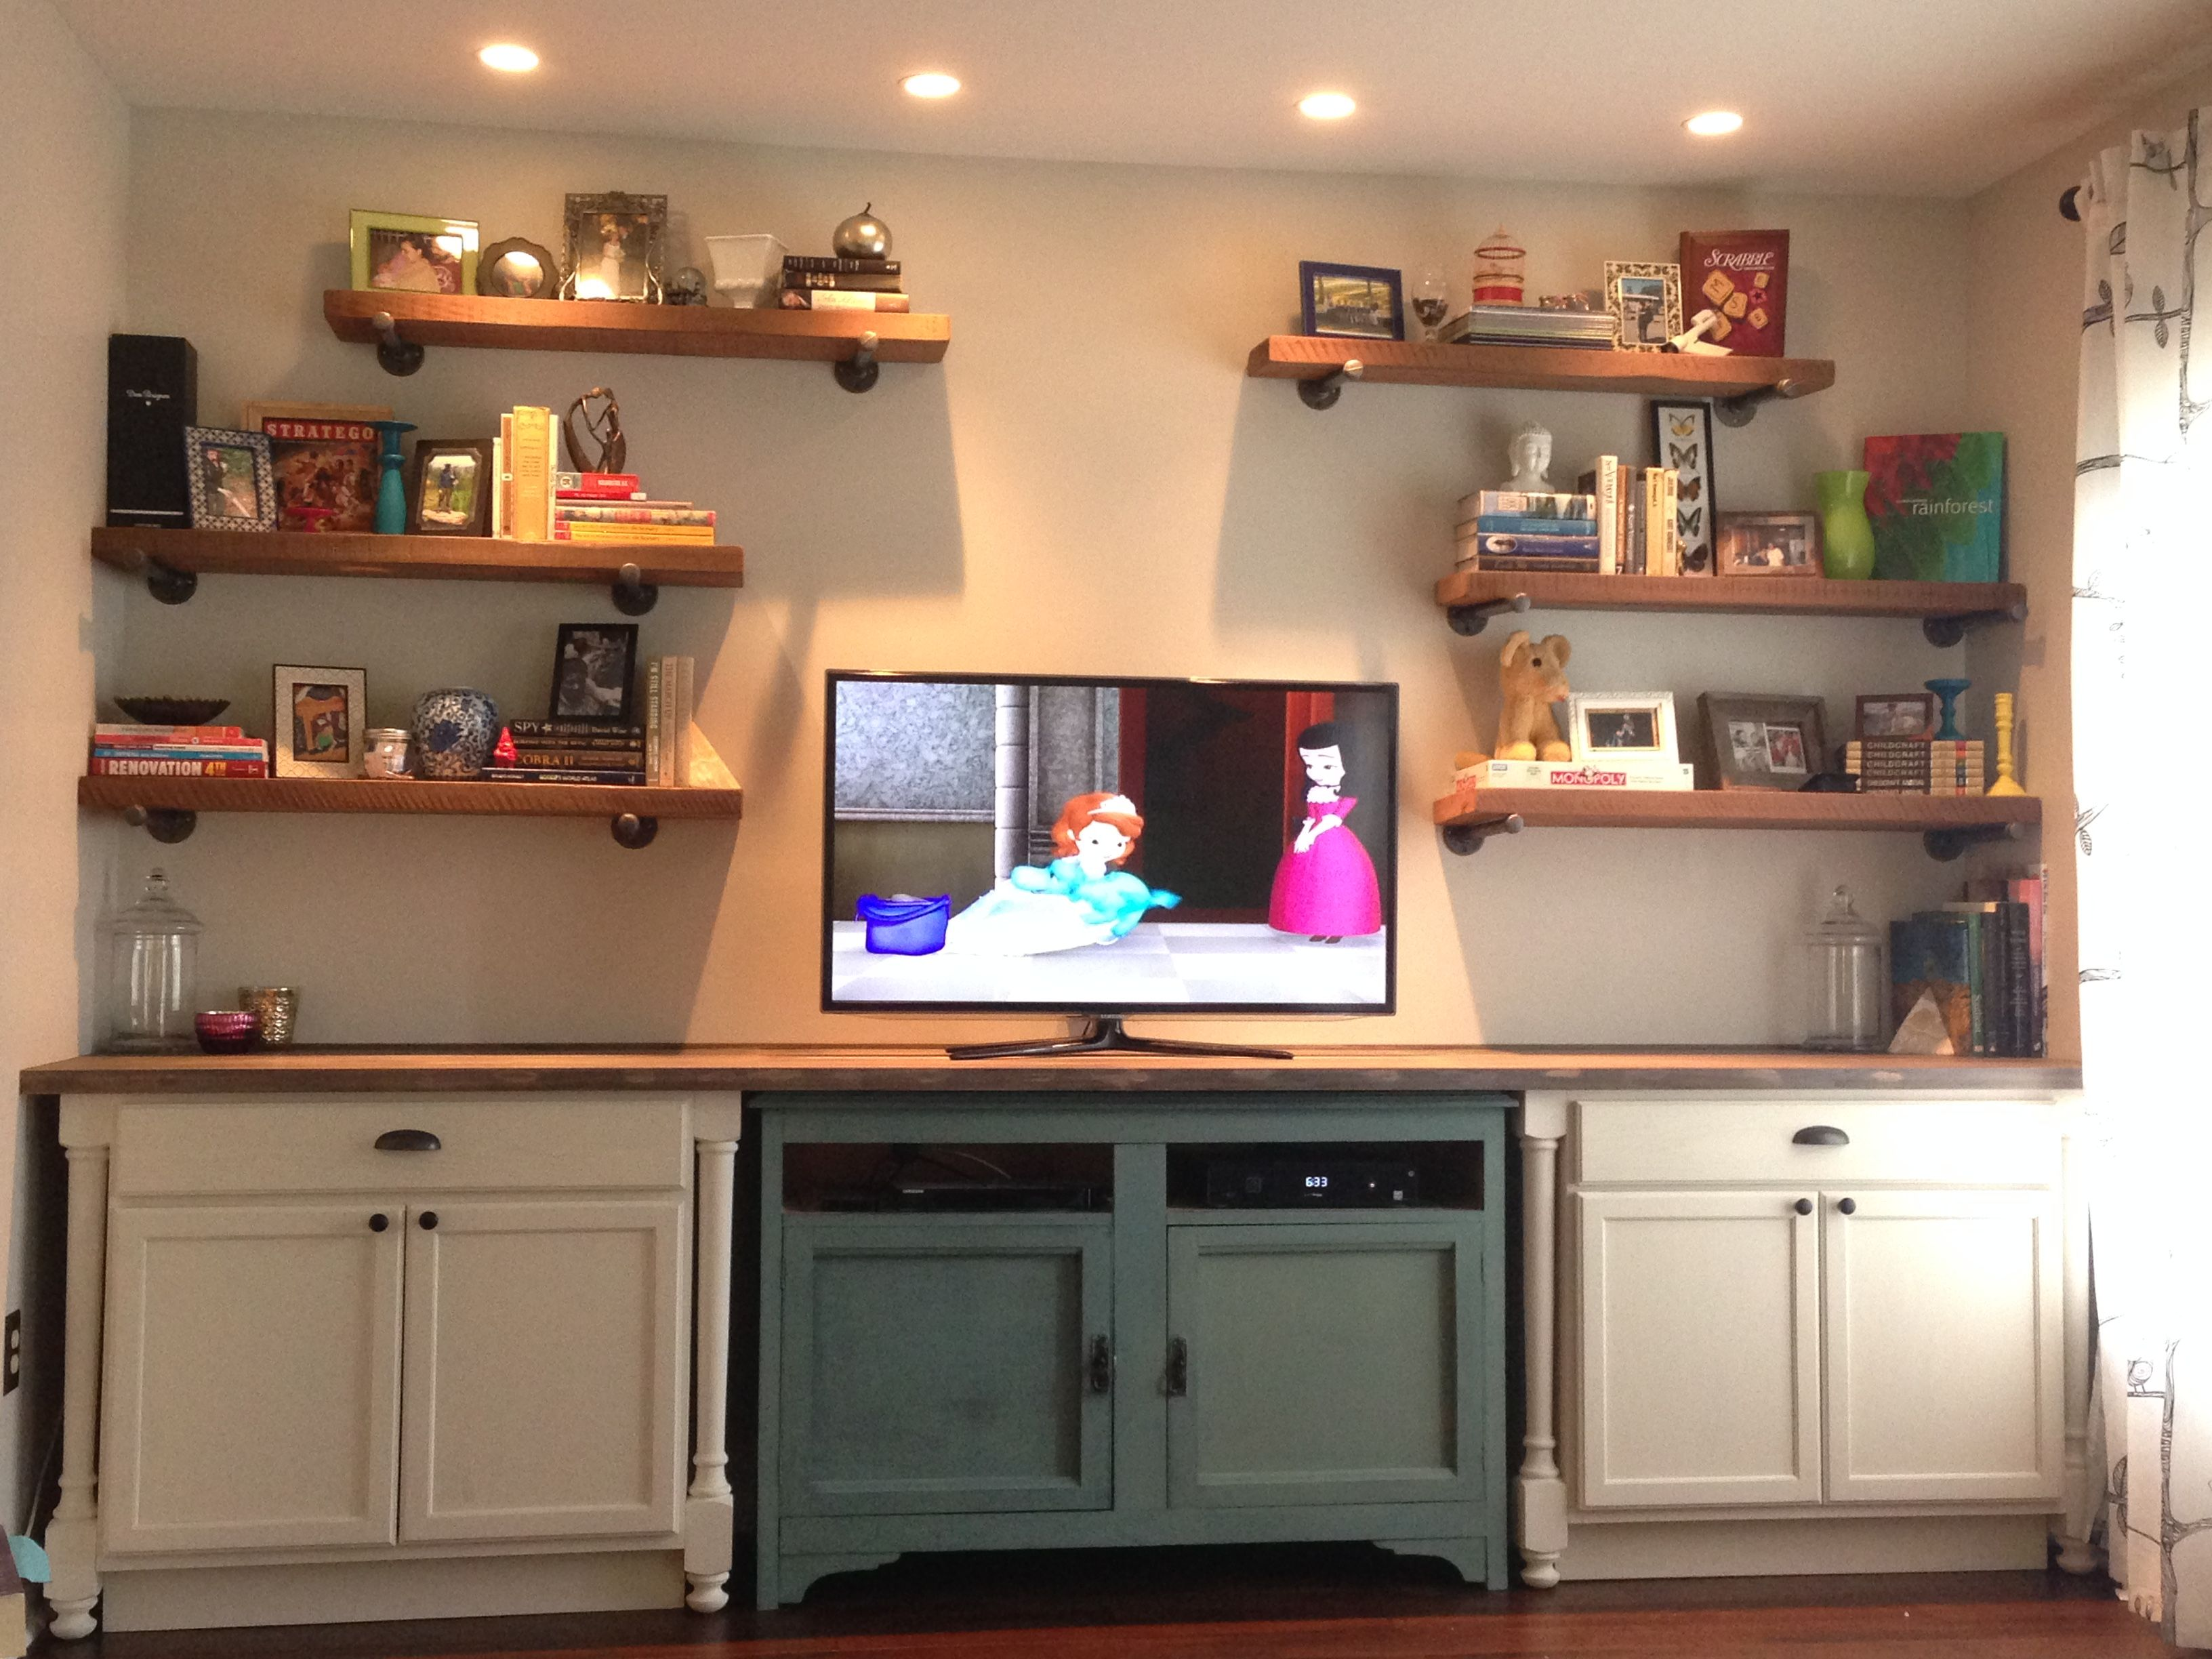 Built In Entertainment Center Using Stock Cabinets And A Re Purposed Buffet Counter Top Bui Stock Cabinets Built In Entertainment Center Entertainment Center